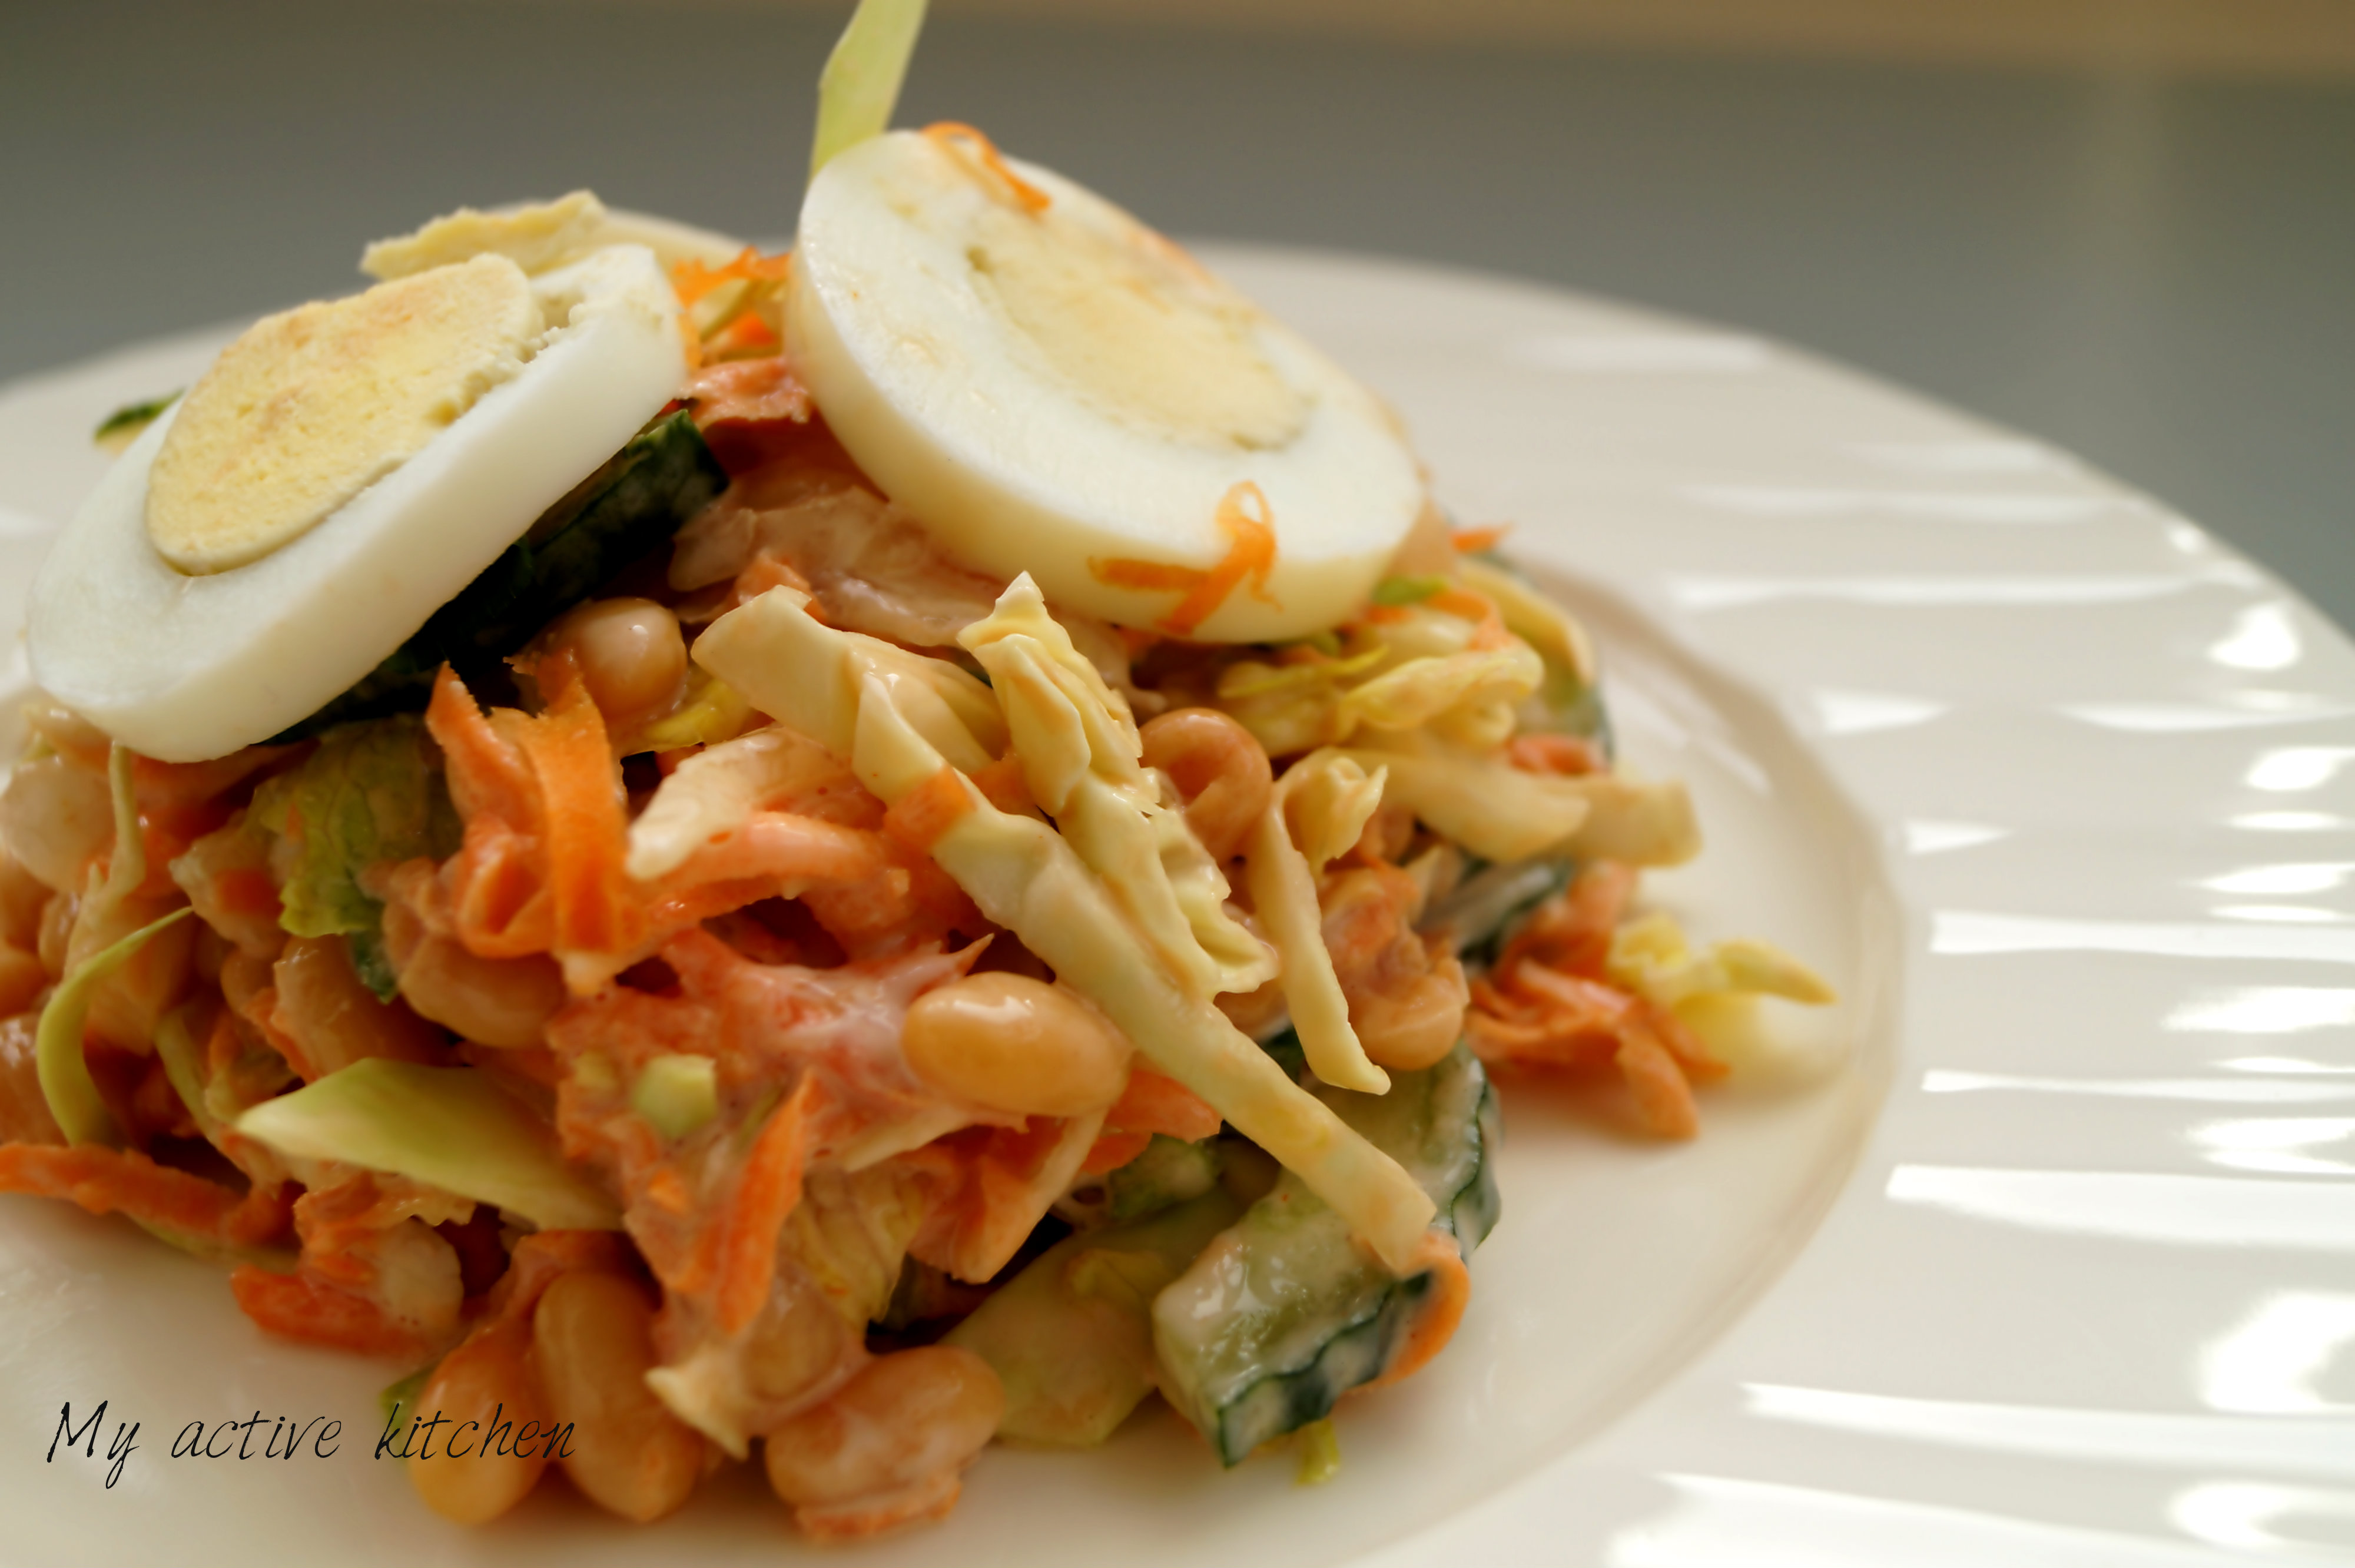 salad with boiled eggs and mayonnaise dressing